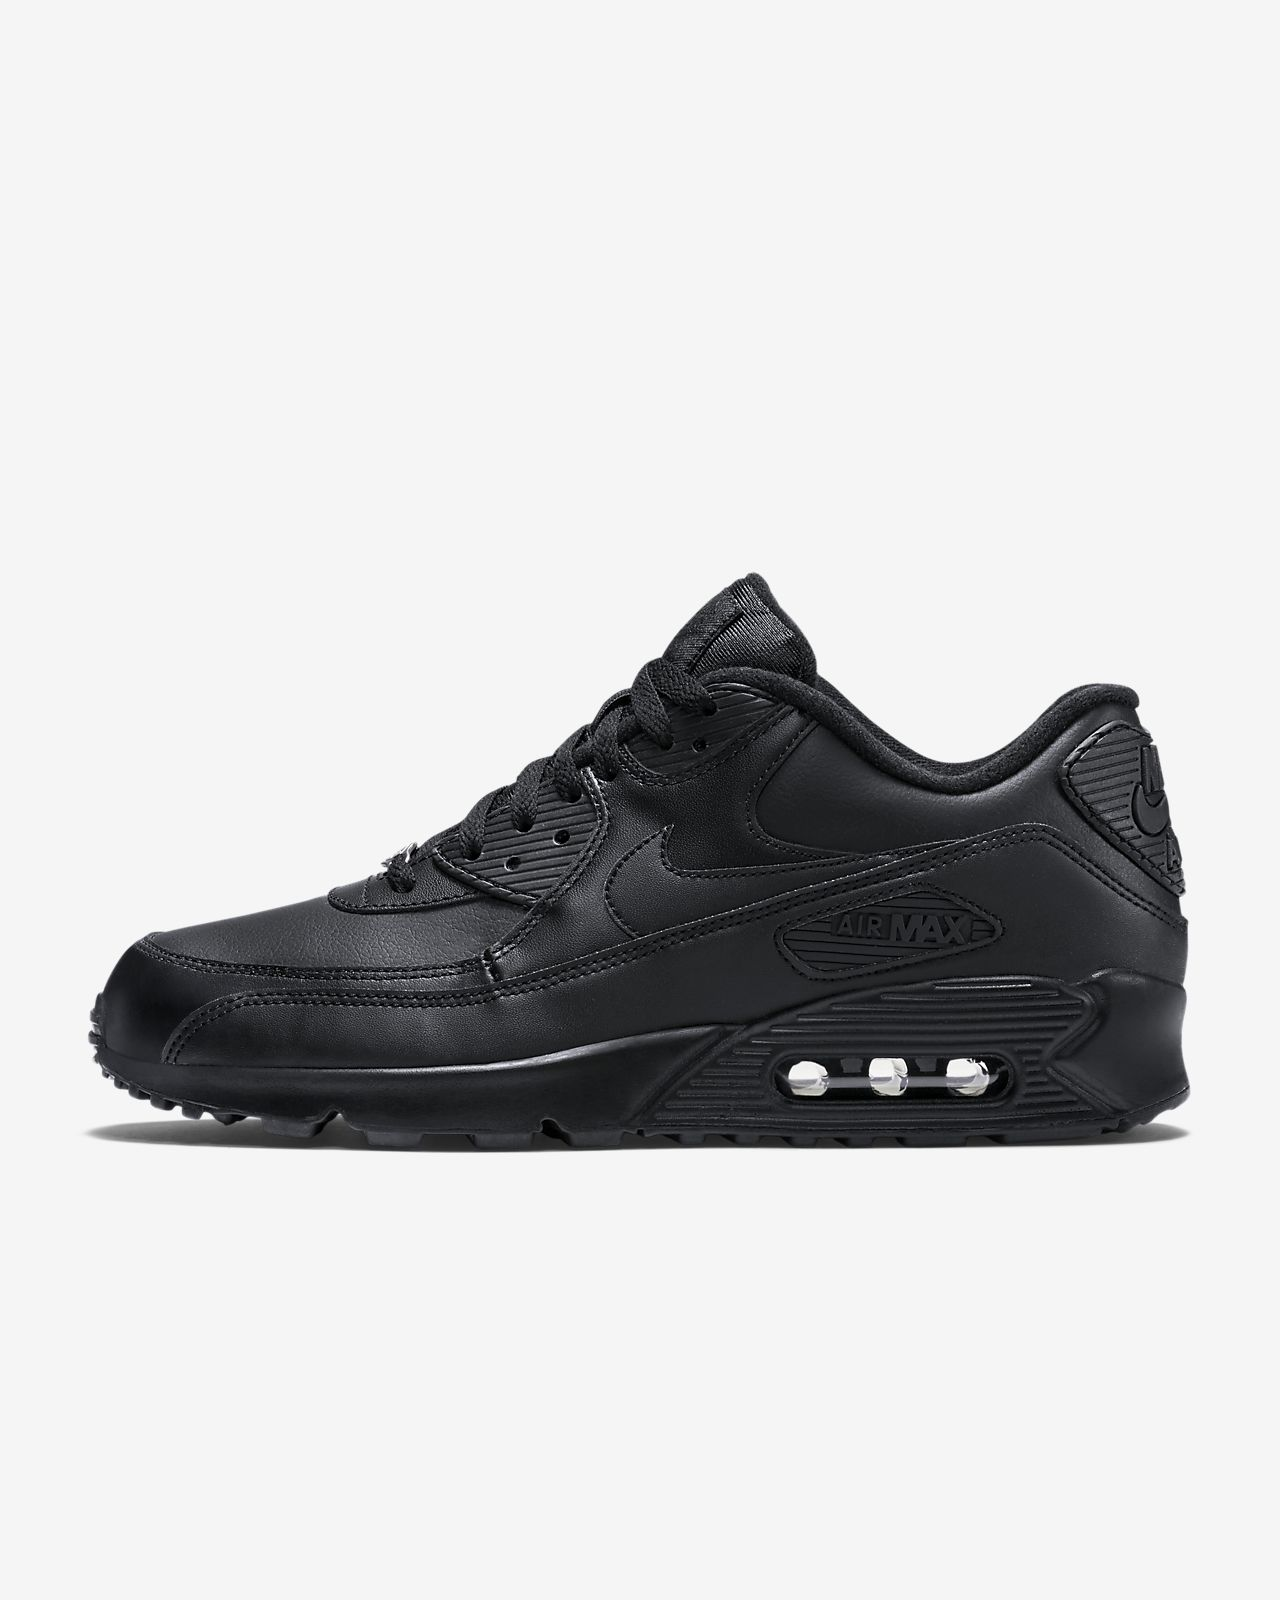 0a9ce688825 Nike Air Max 90 Leather Men s Shoe. Nike.com GB